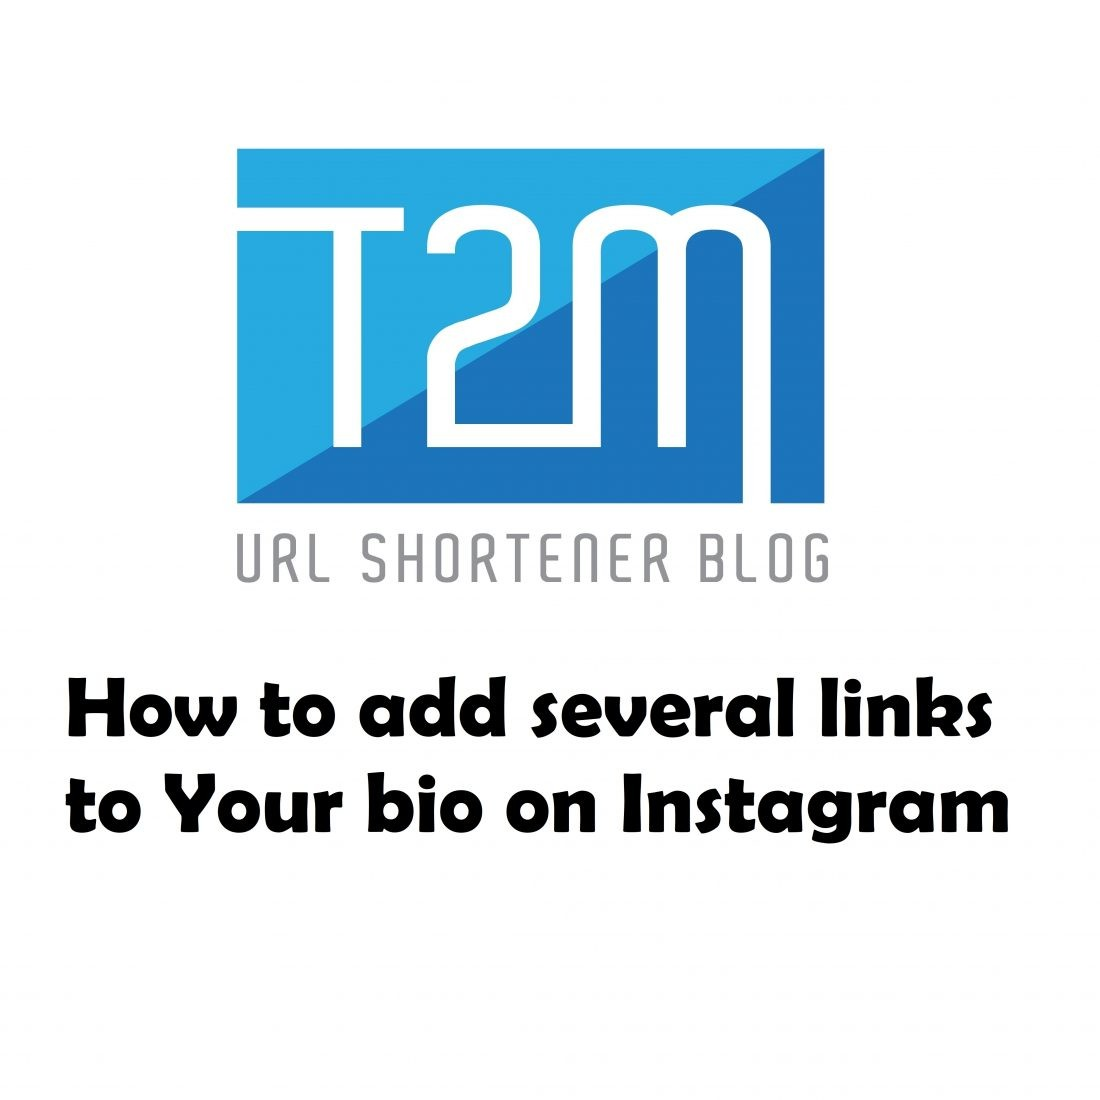 How to add several links to Your bio on Instagram?